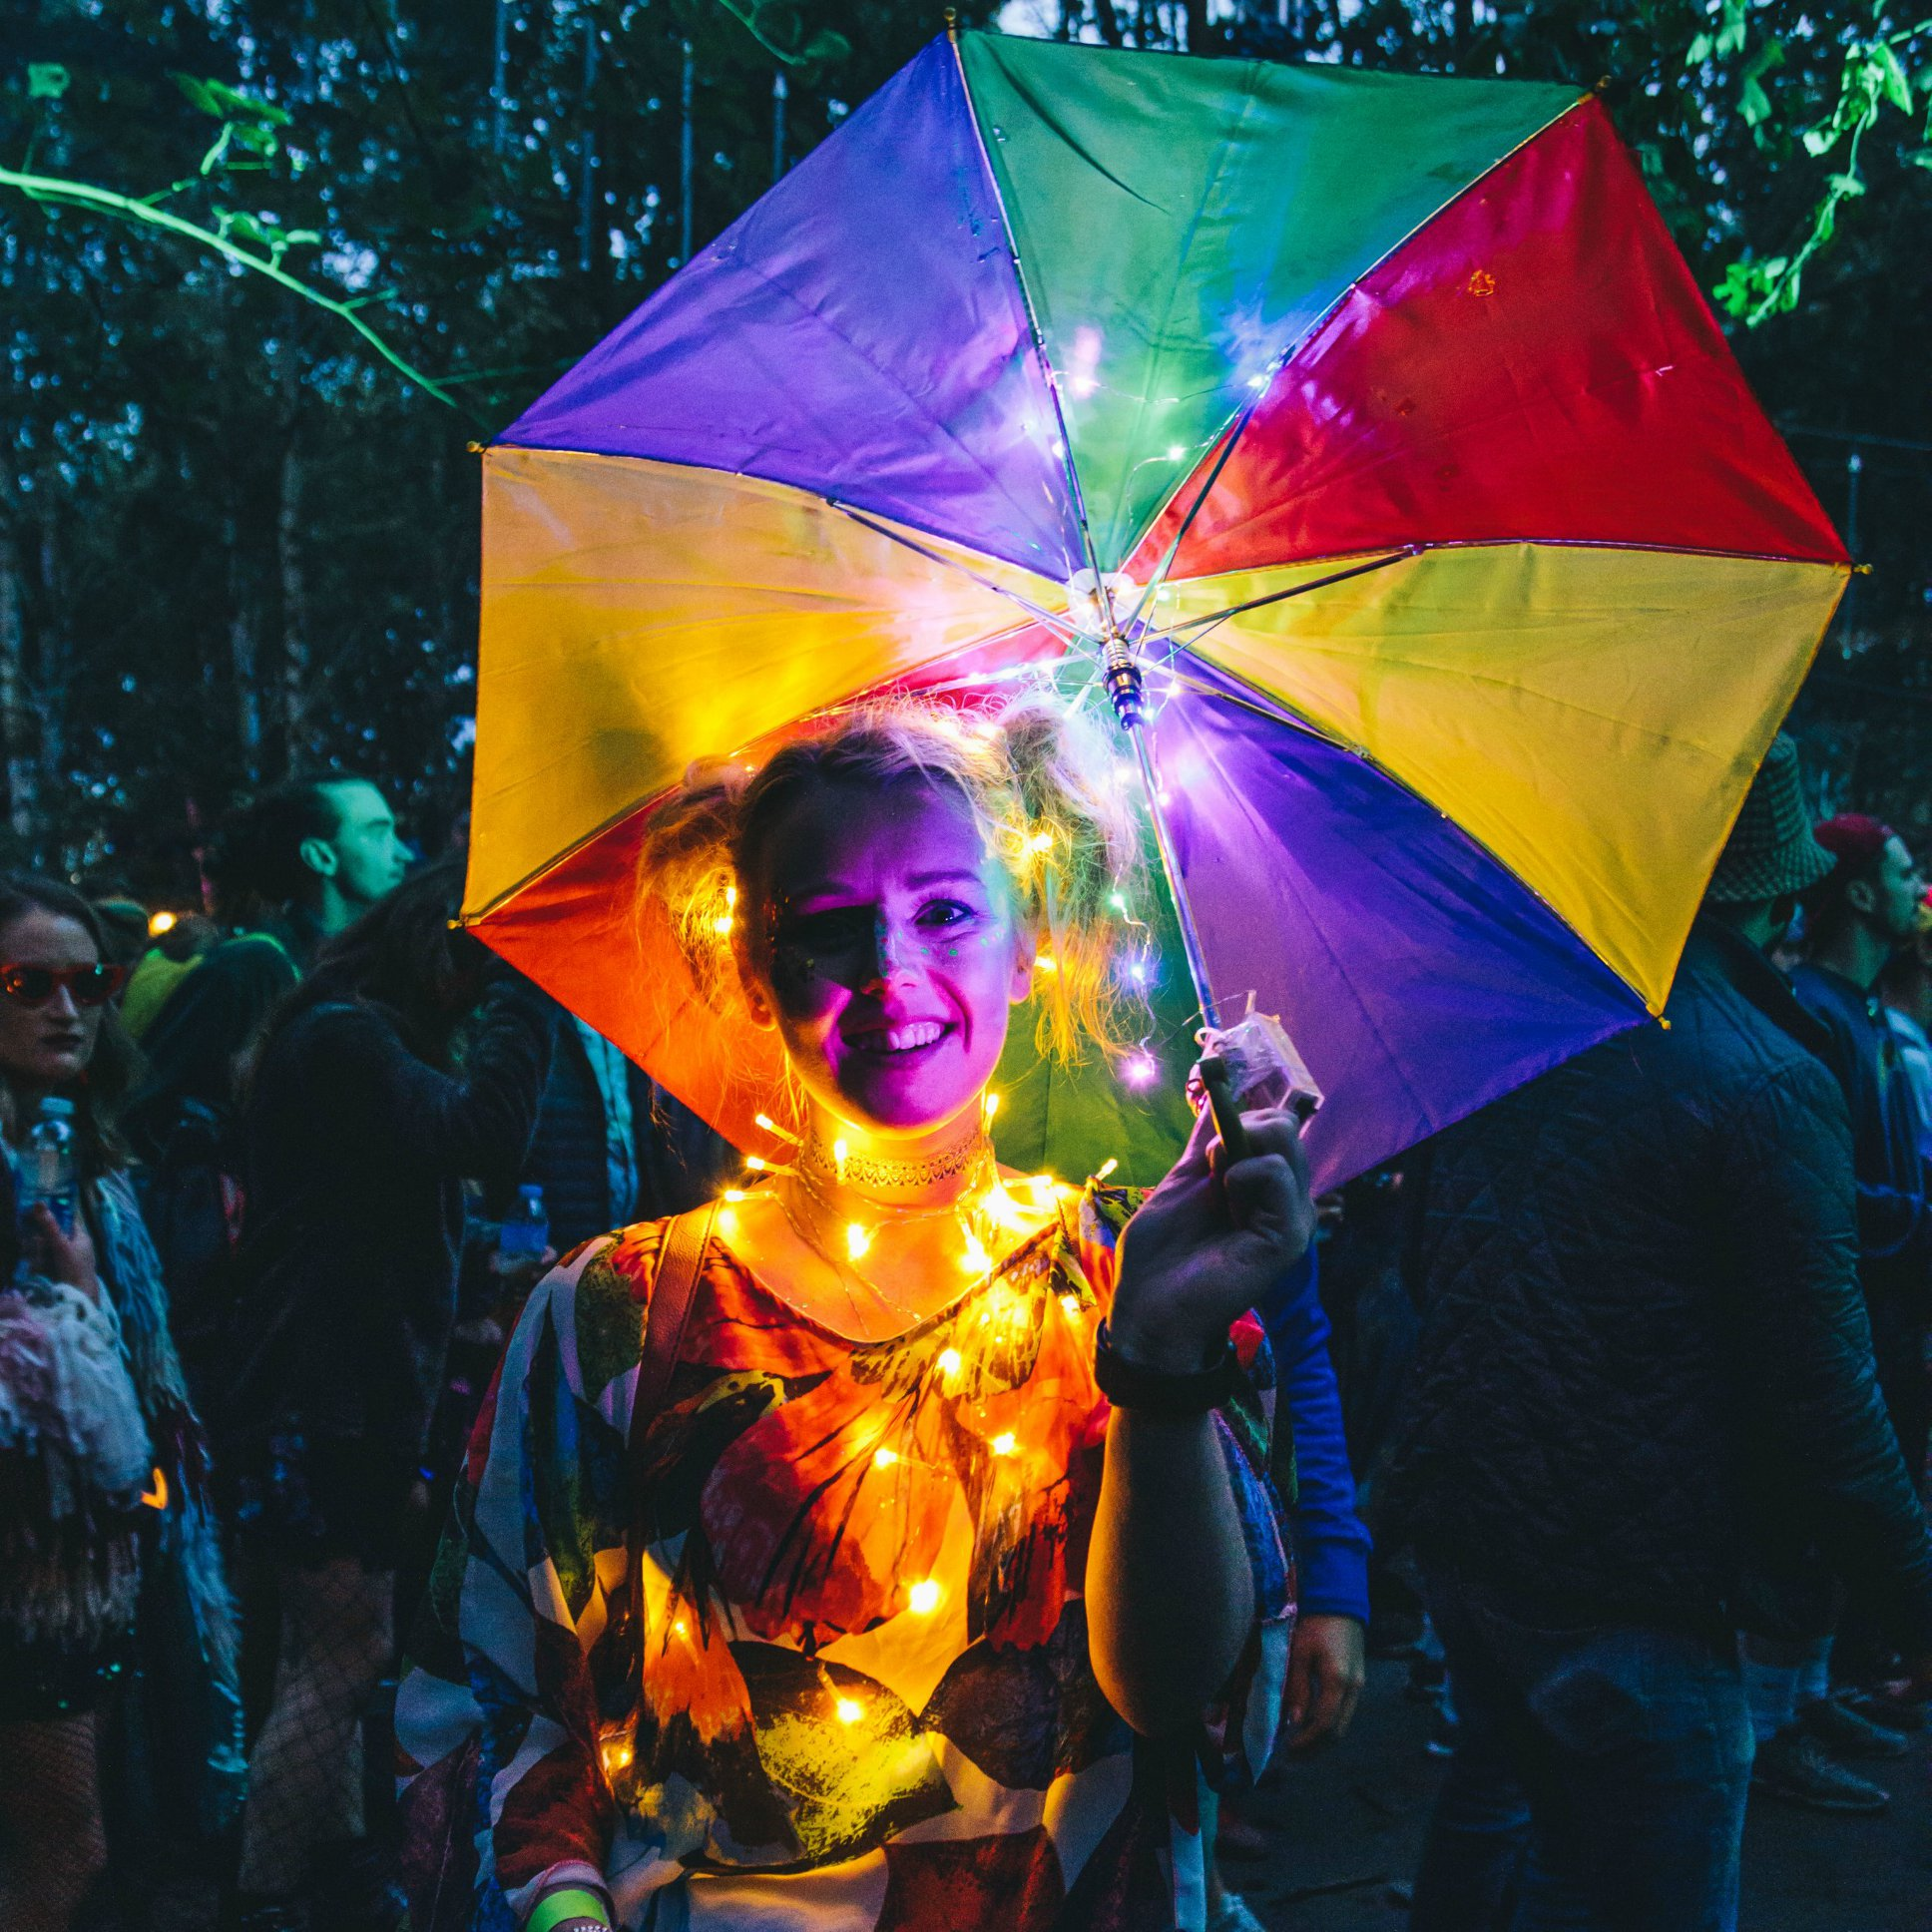 Lost Village news from @lostvillagefest: You light up our life…